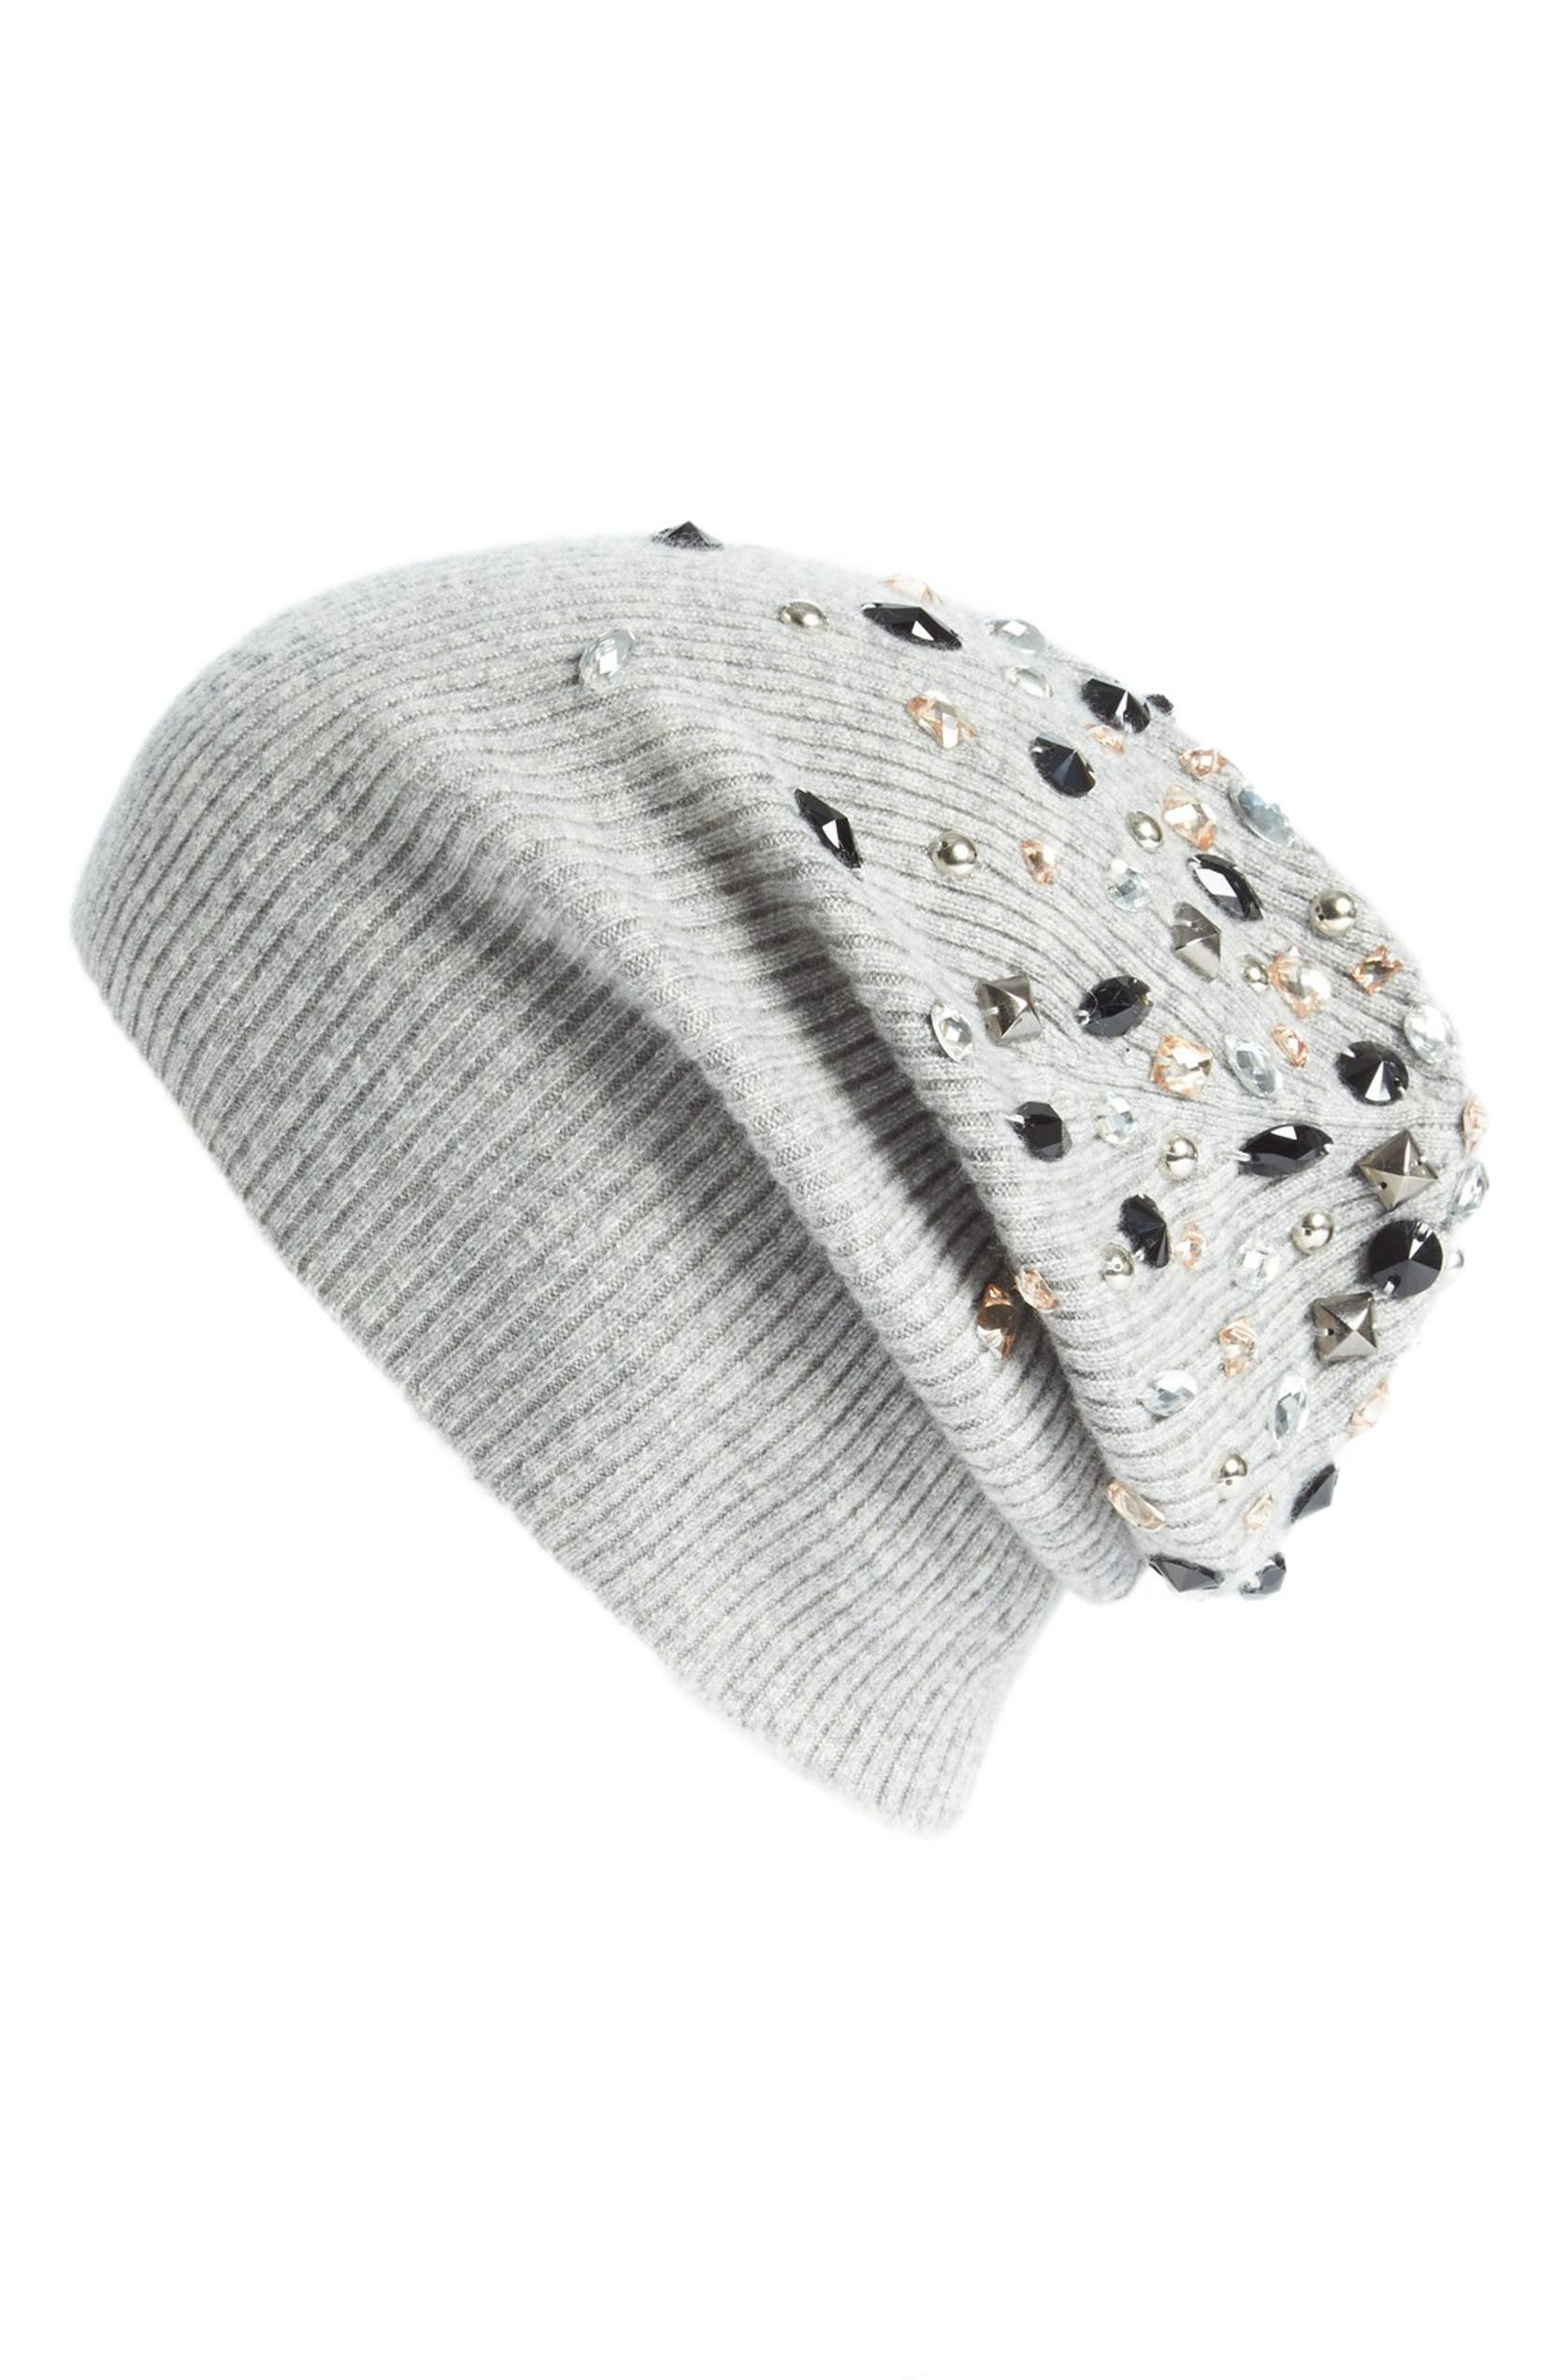 21be75f04 Embellished Cashmere Beanie